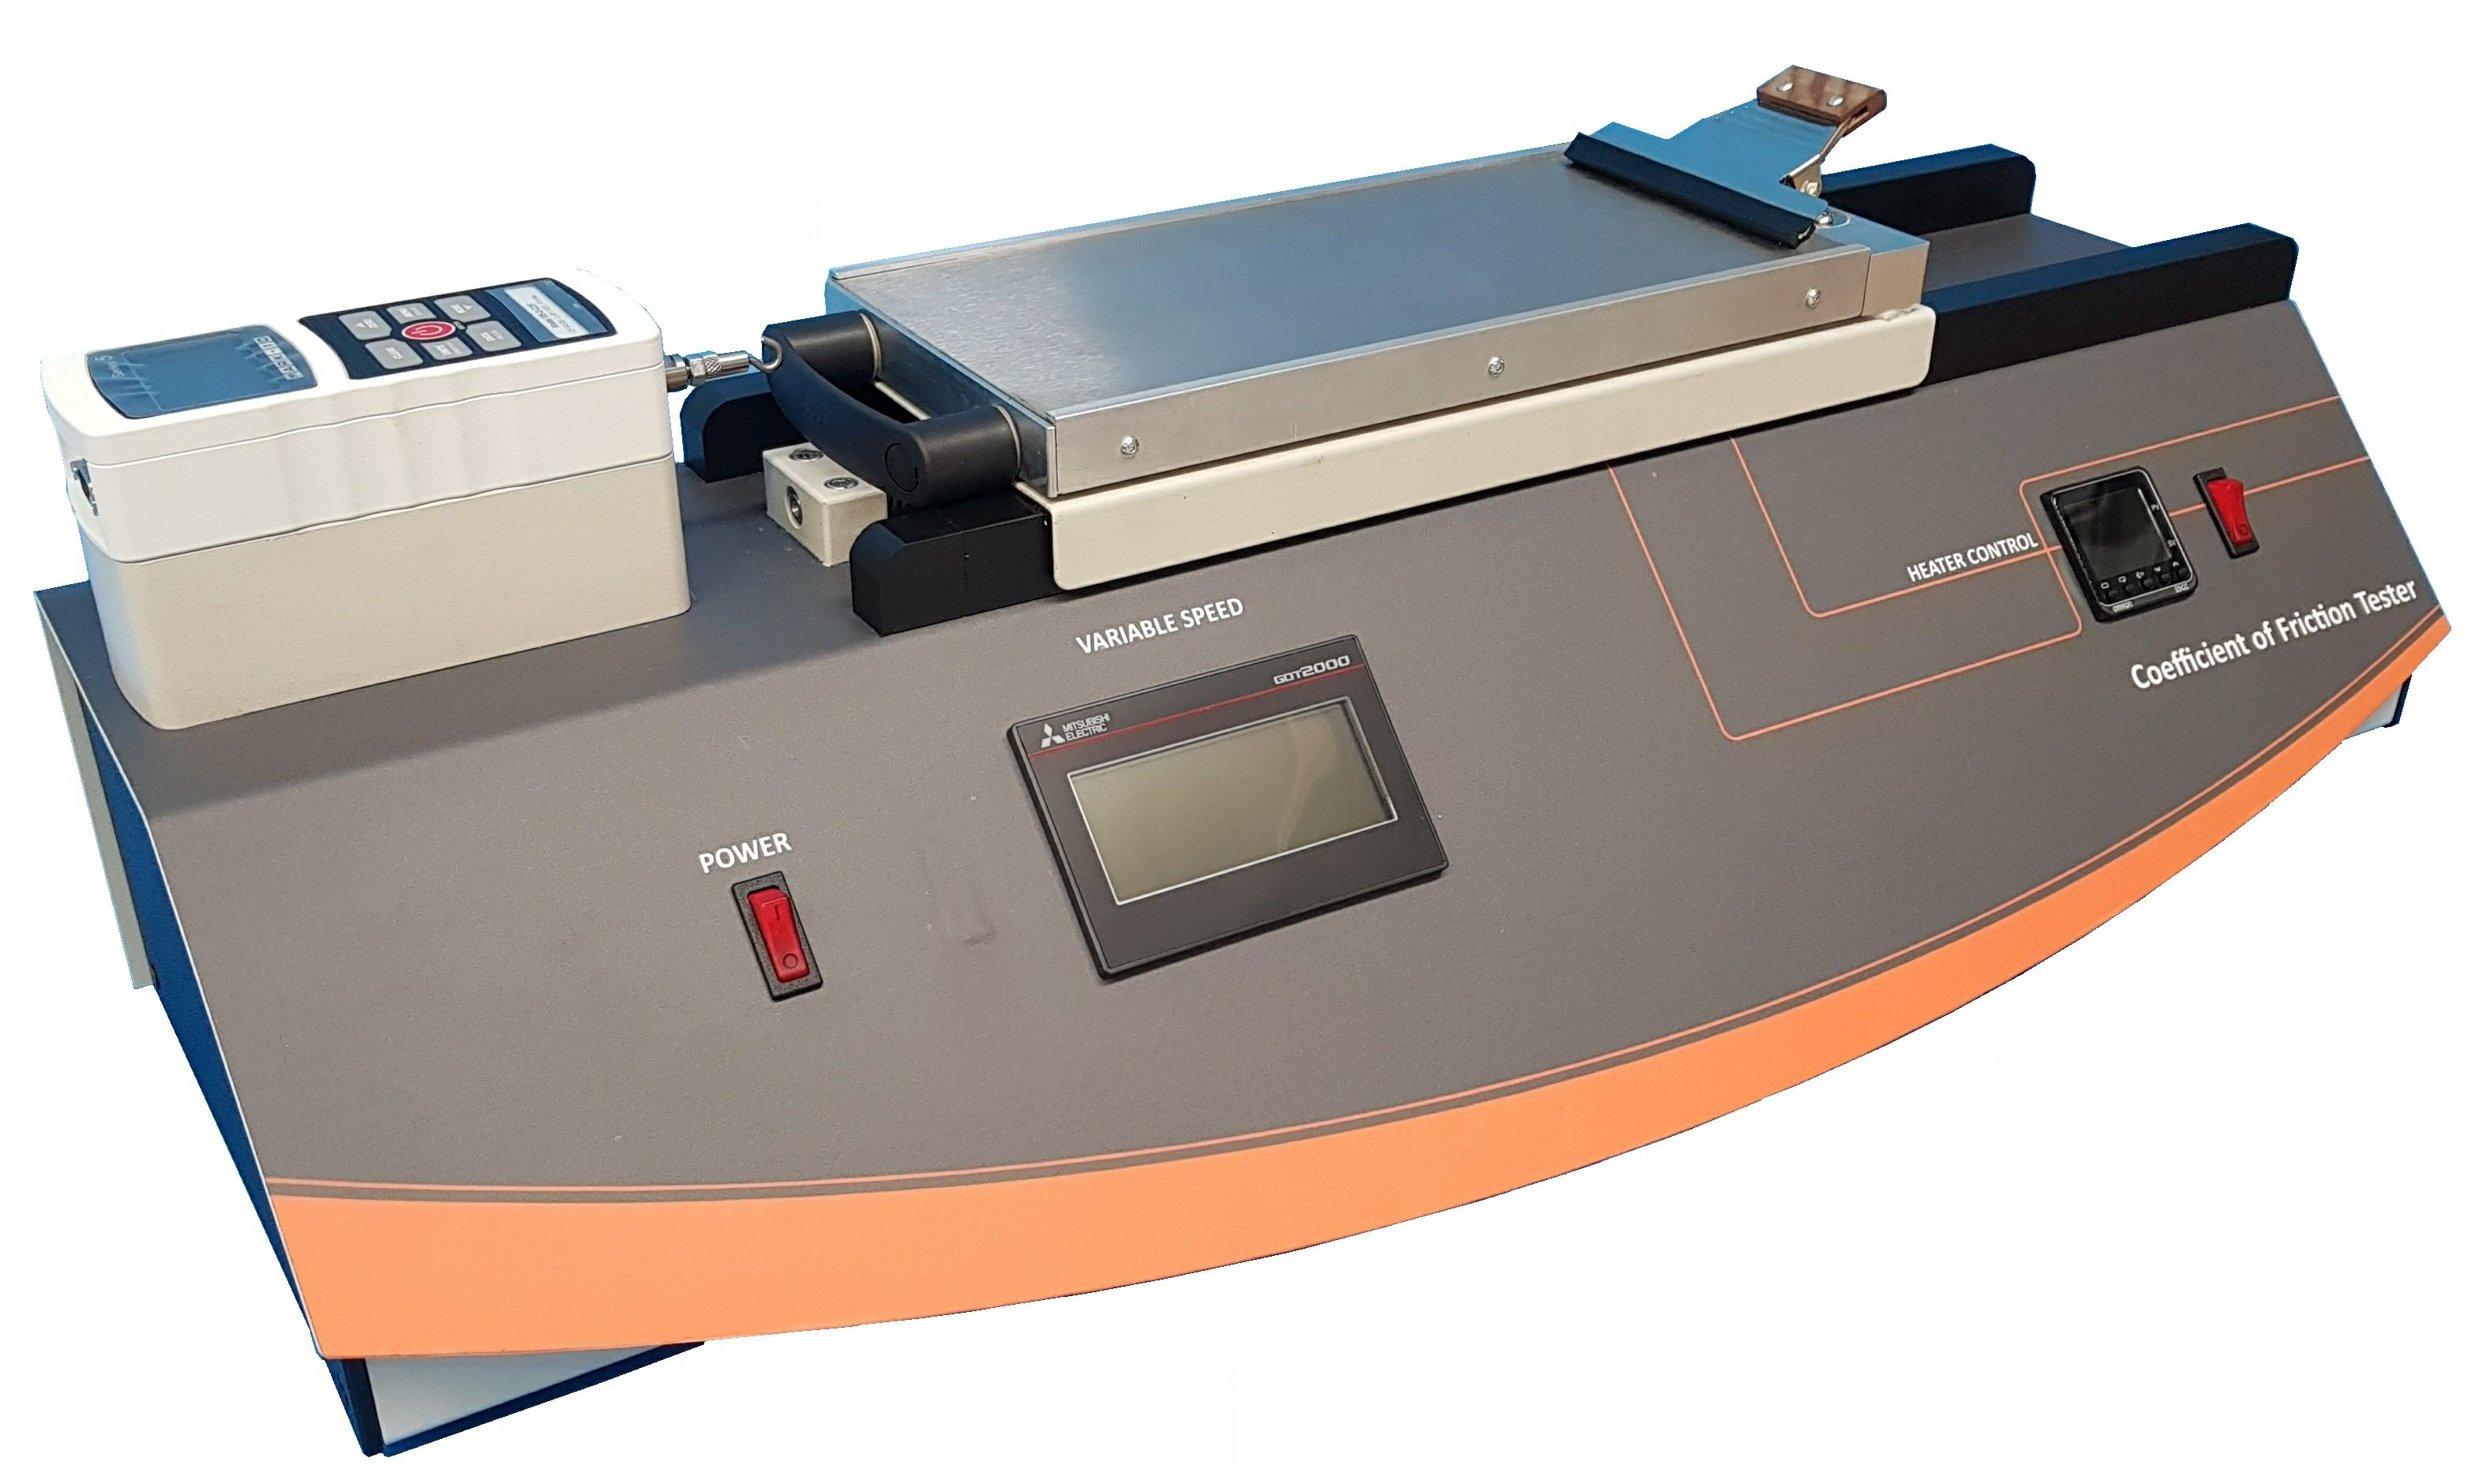 Coefficient of Friction Tester with Variable Speed & Heated Platen